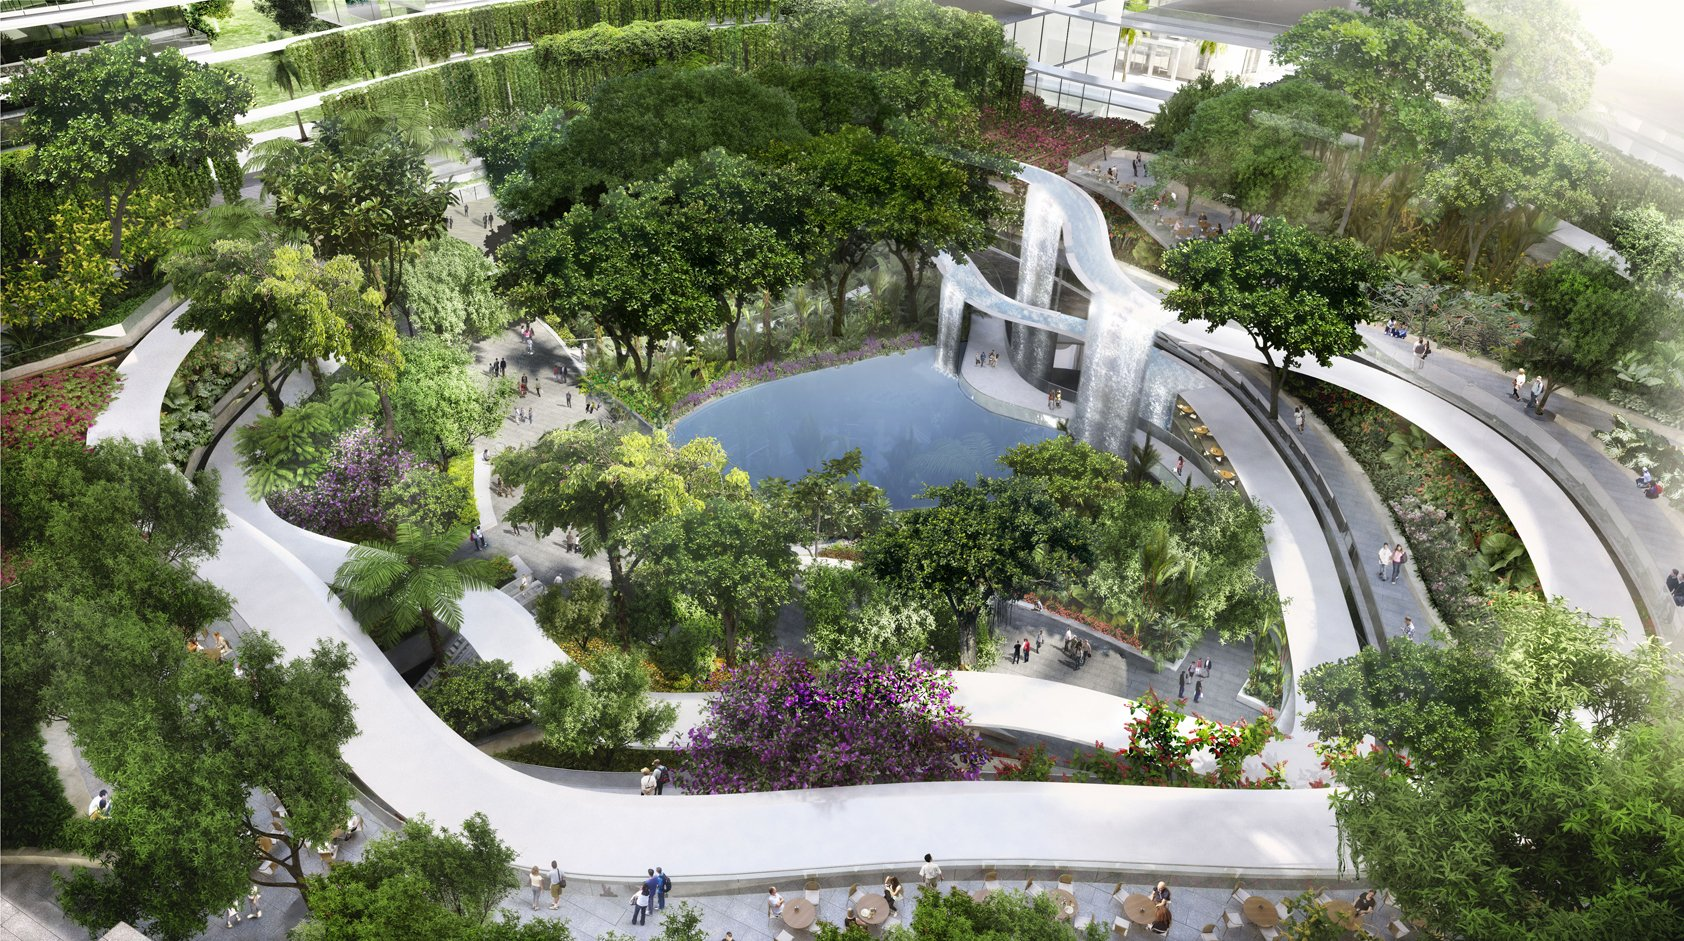 Singapore's 'cloud forest' revolutionizes green spaces – Tech Insider